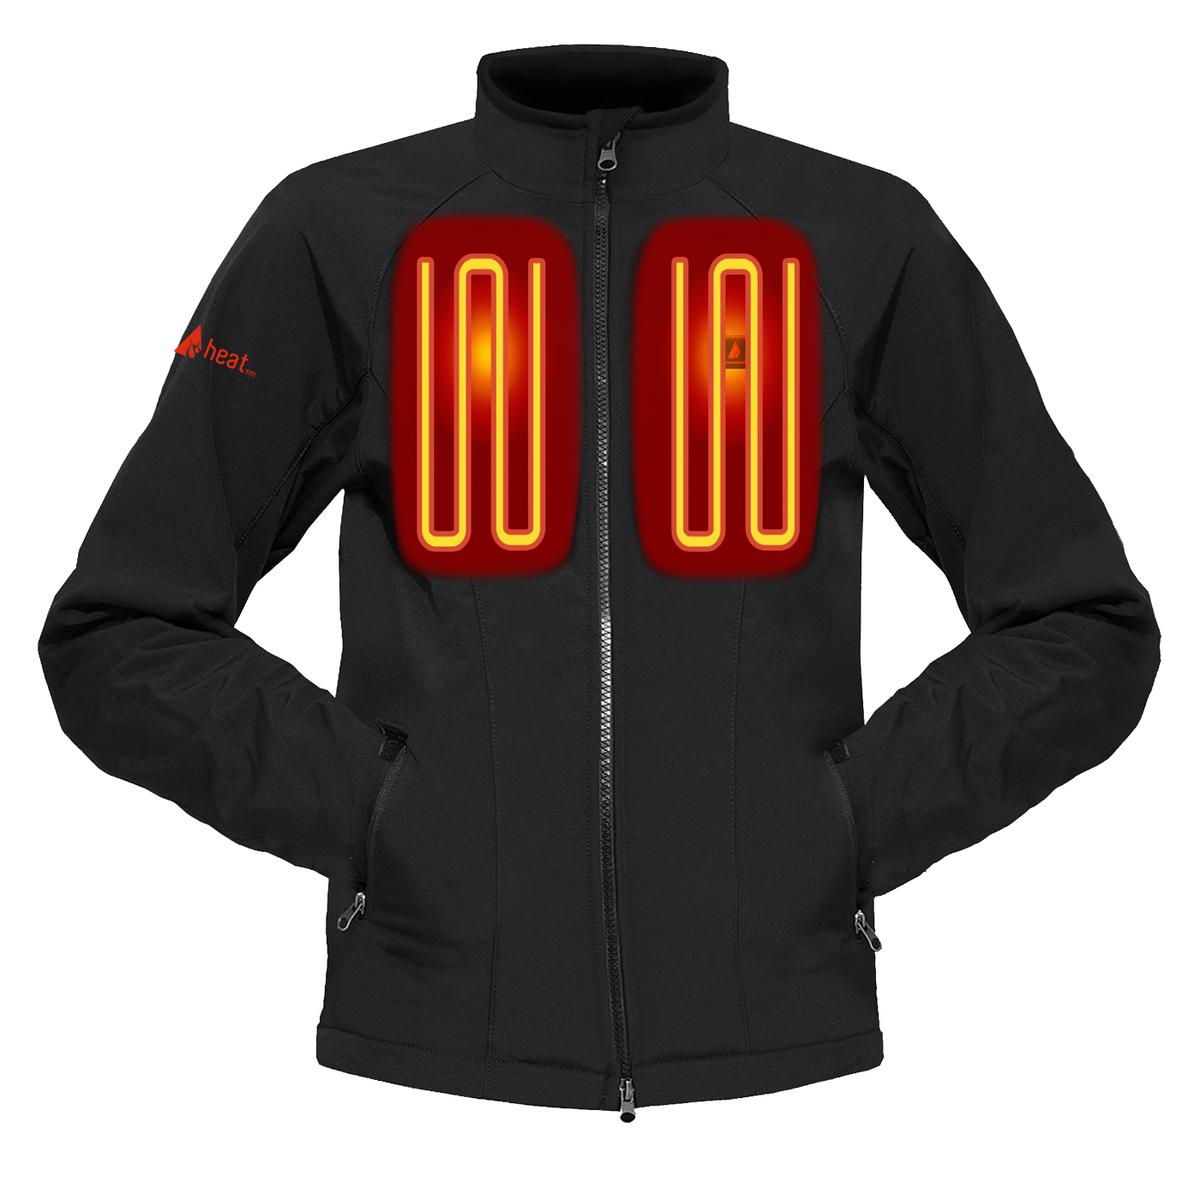 6c1df5c4900e ActionHeat 5V Battery Heated Jacket - Men s - The Warming Store